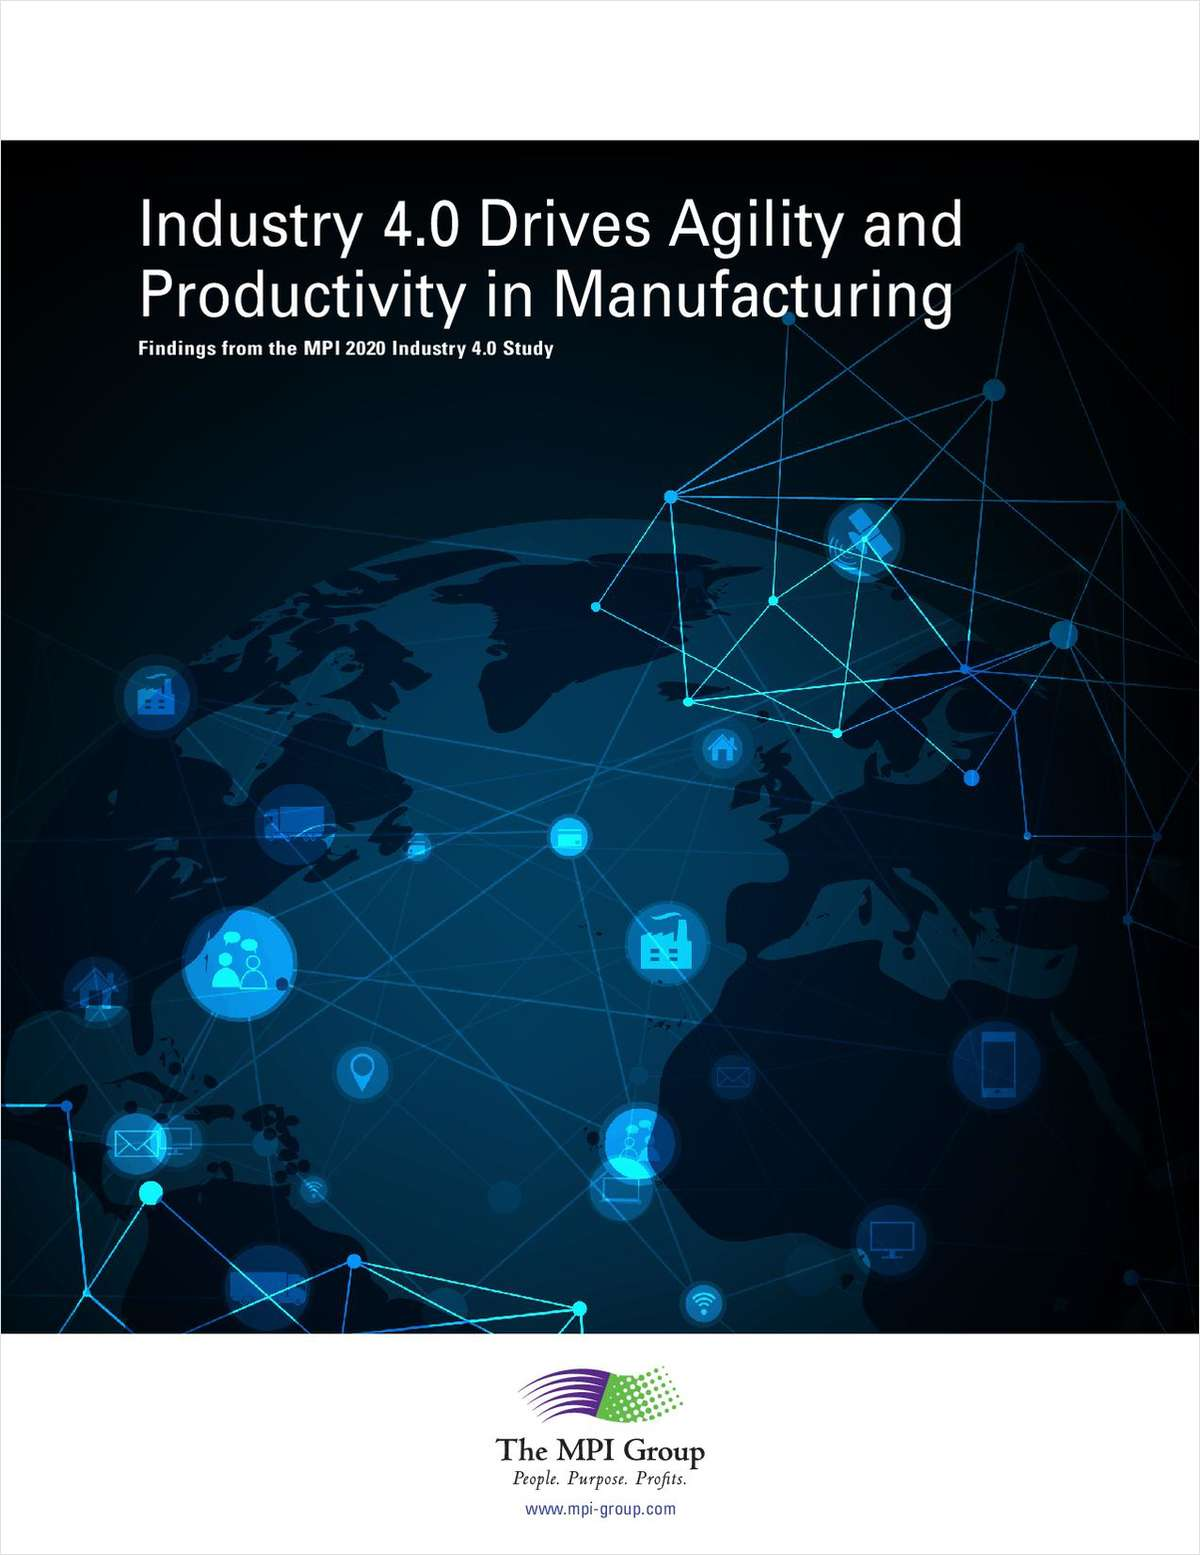 Industry 4.0 Drives Agility and Productivity in Manufacturing